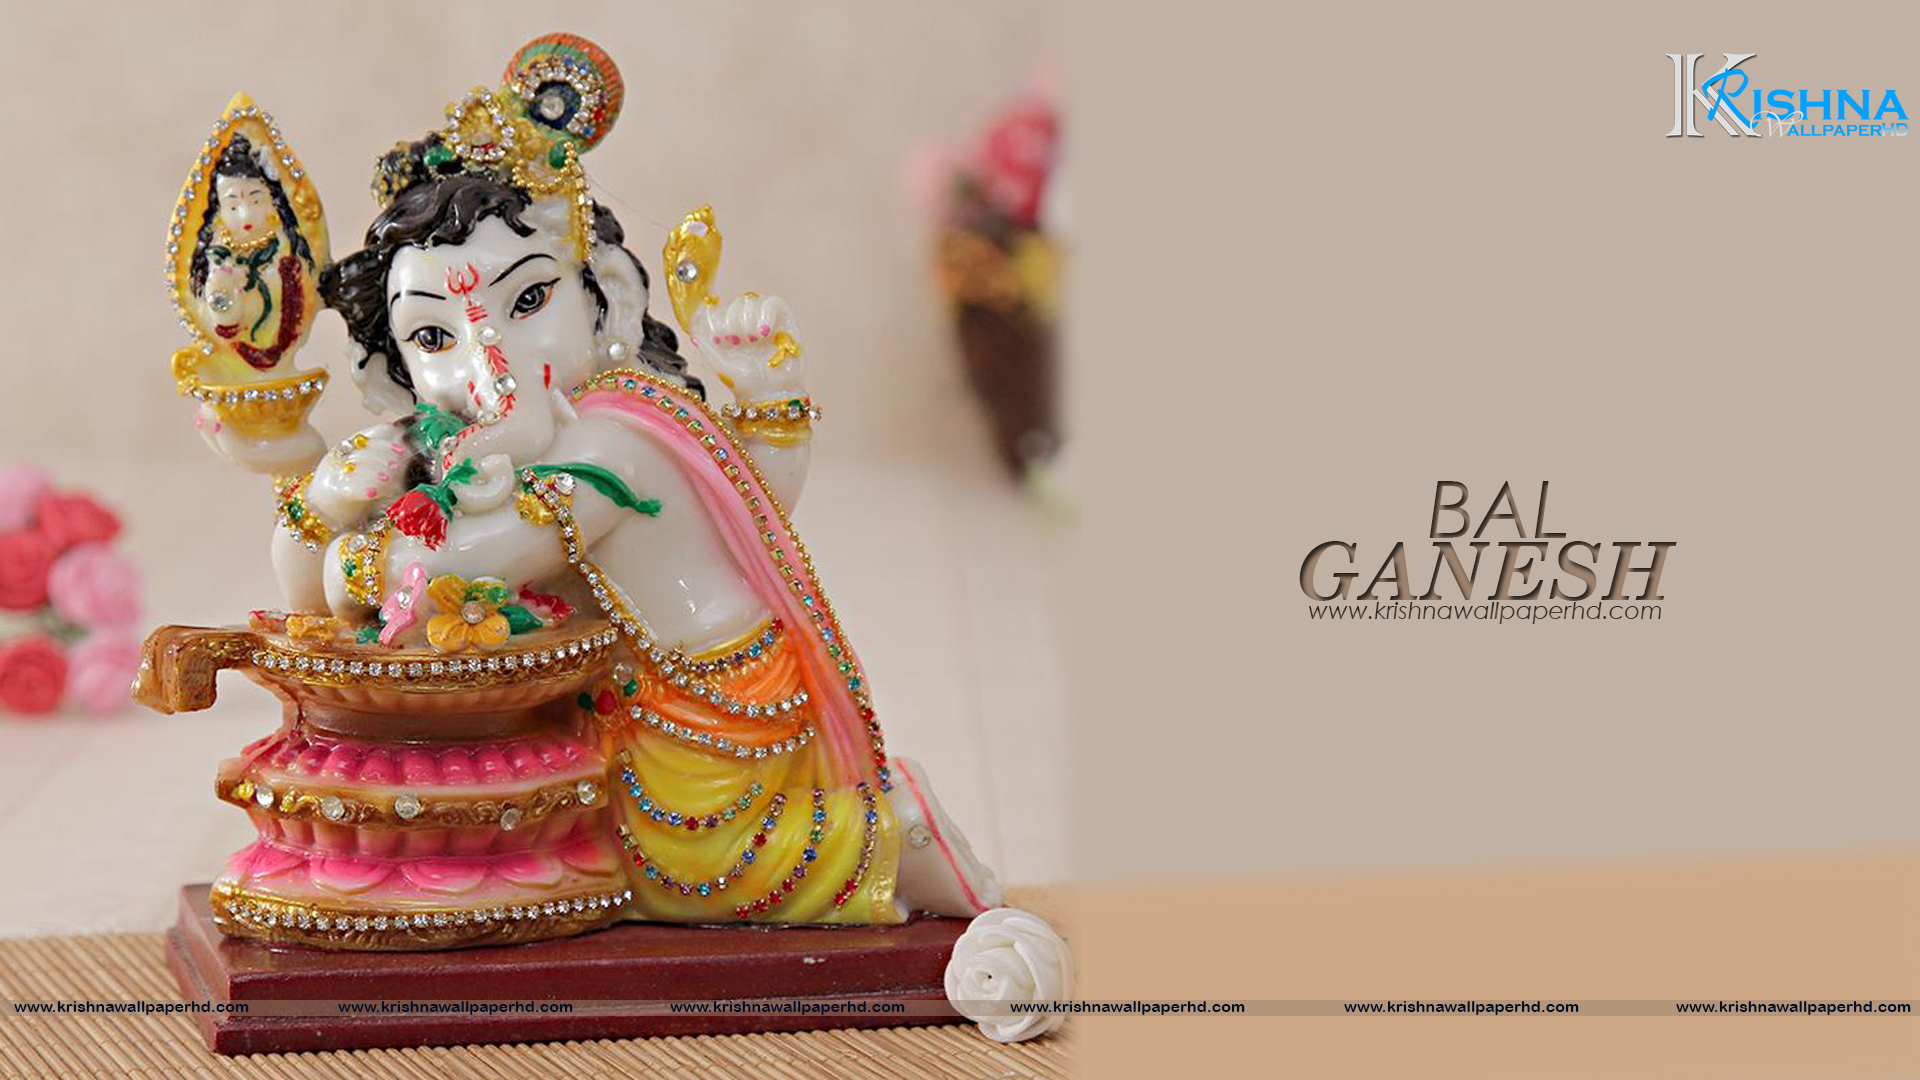 Free Download Bal Ganesh Full HD Size Wallpaper